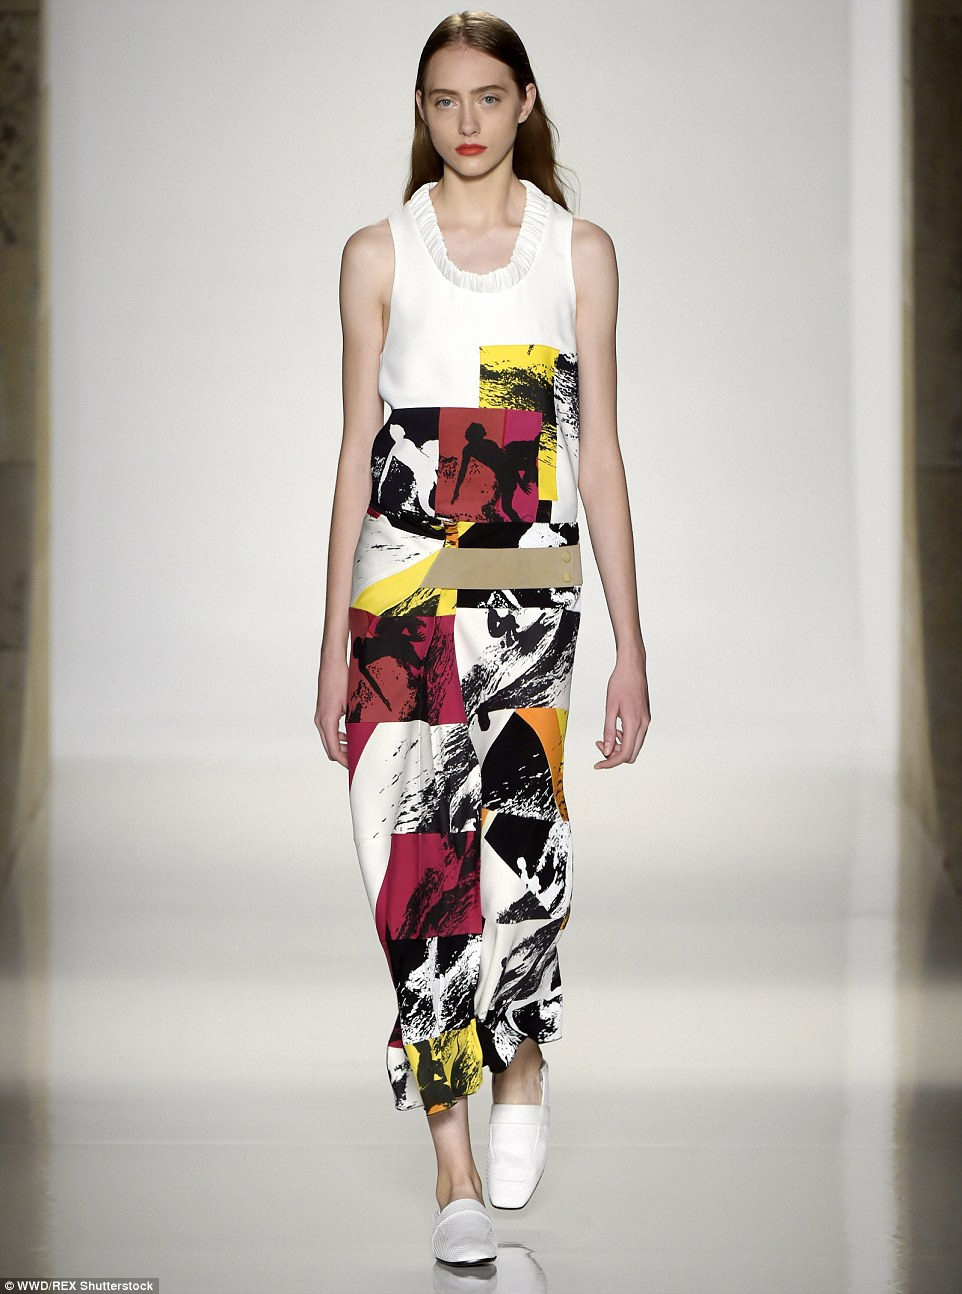 2C44F58D00000578-3232855-Take_a_bow_The_British_designer_debuted_her_Spring_Summer_2016_c-a-1_1442189463379